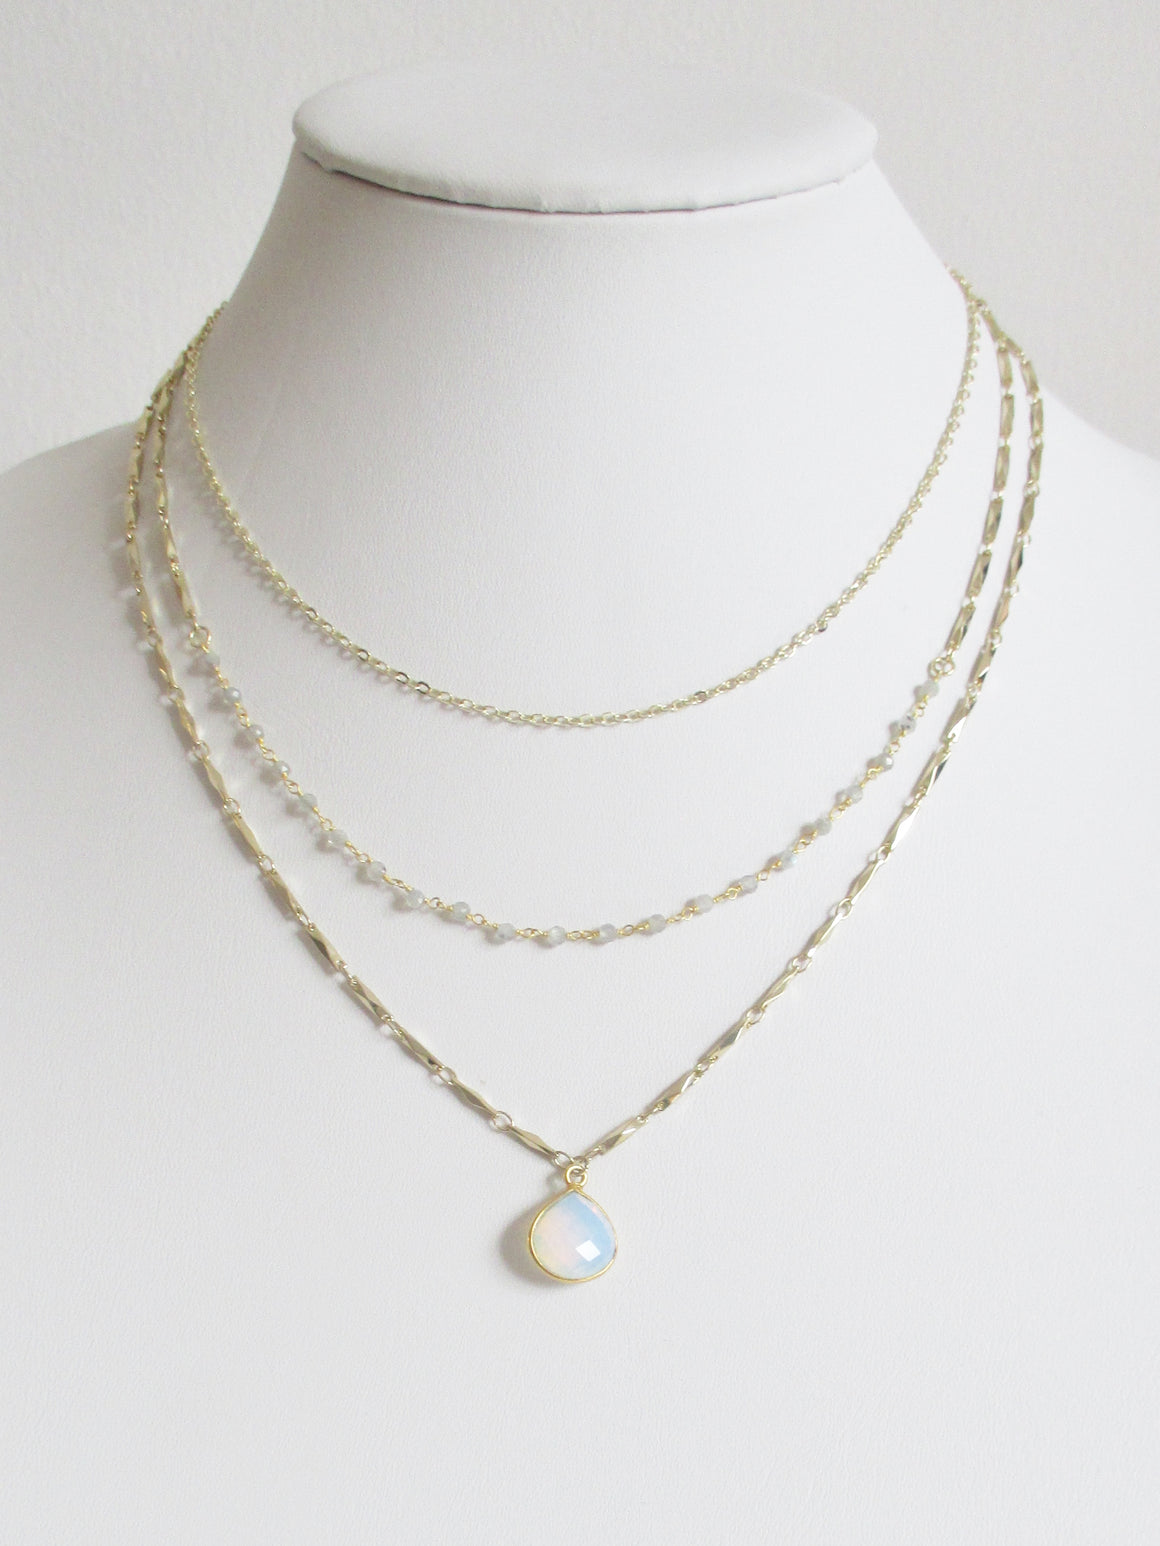 METALLIC OCEAN THREE TIER LABRADORITE AND WHITE OPAL GEMSTONE NECKLACE